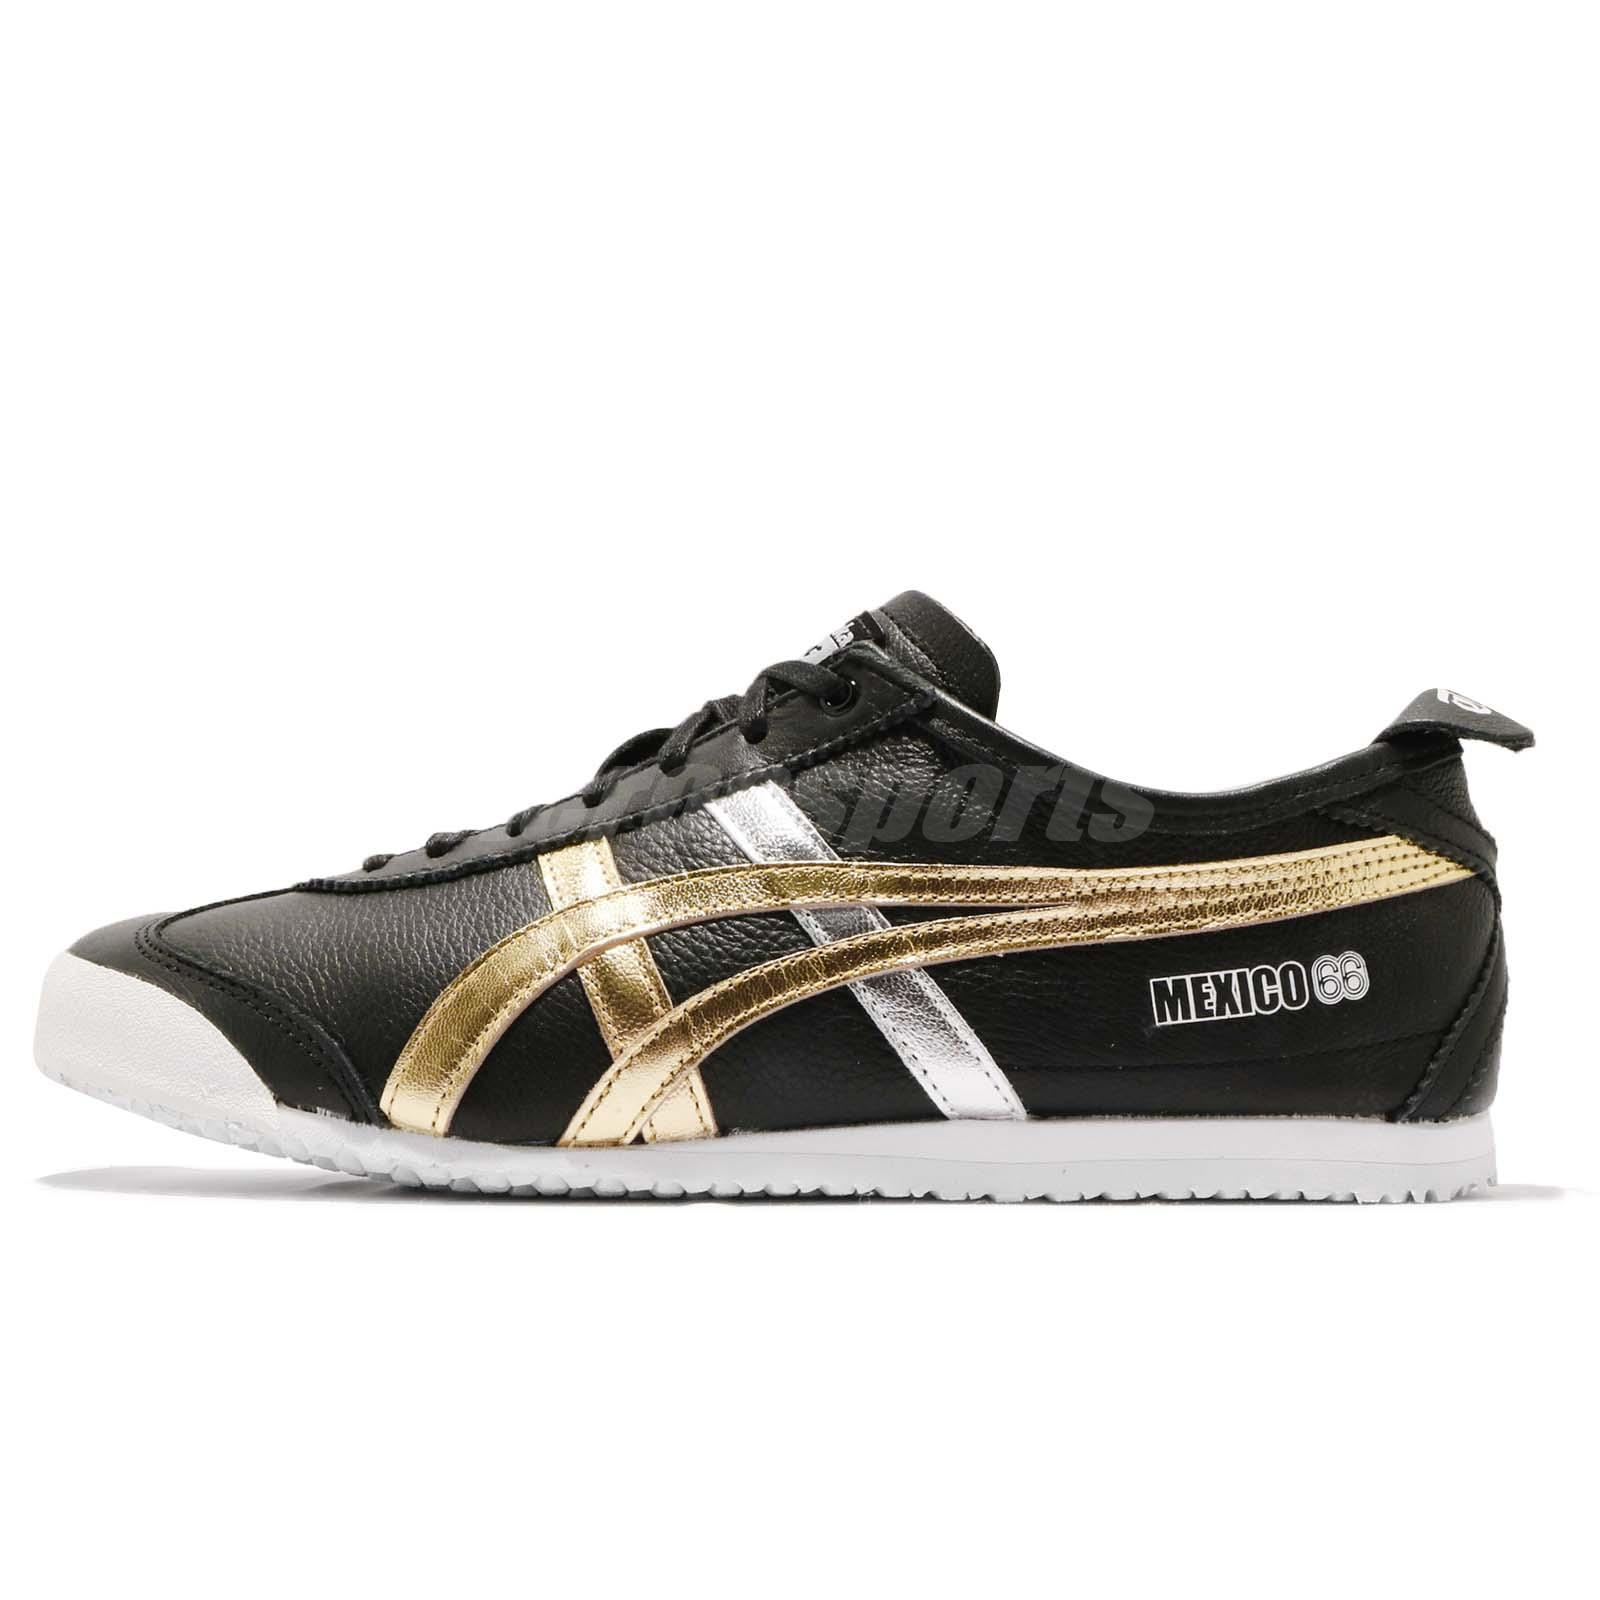 super popular b27e1 61677 Details about Asics Onitsuka Tiger Mexico 66 Black Gold Men Running Shoes  Sneakers D5V2L-9094